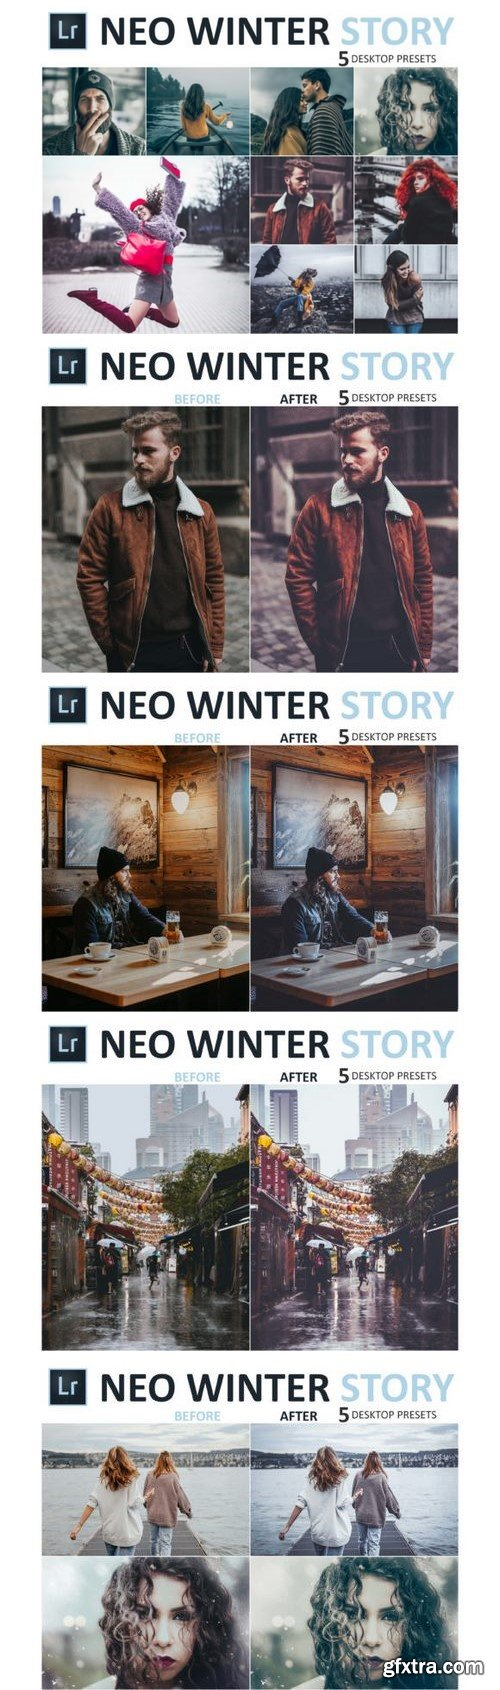 Thehungryjpeg - Neo Winter Story Desktop Lightroom Presets 3524664